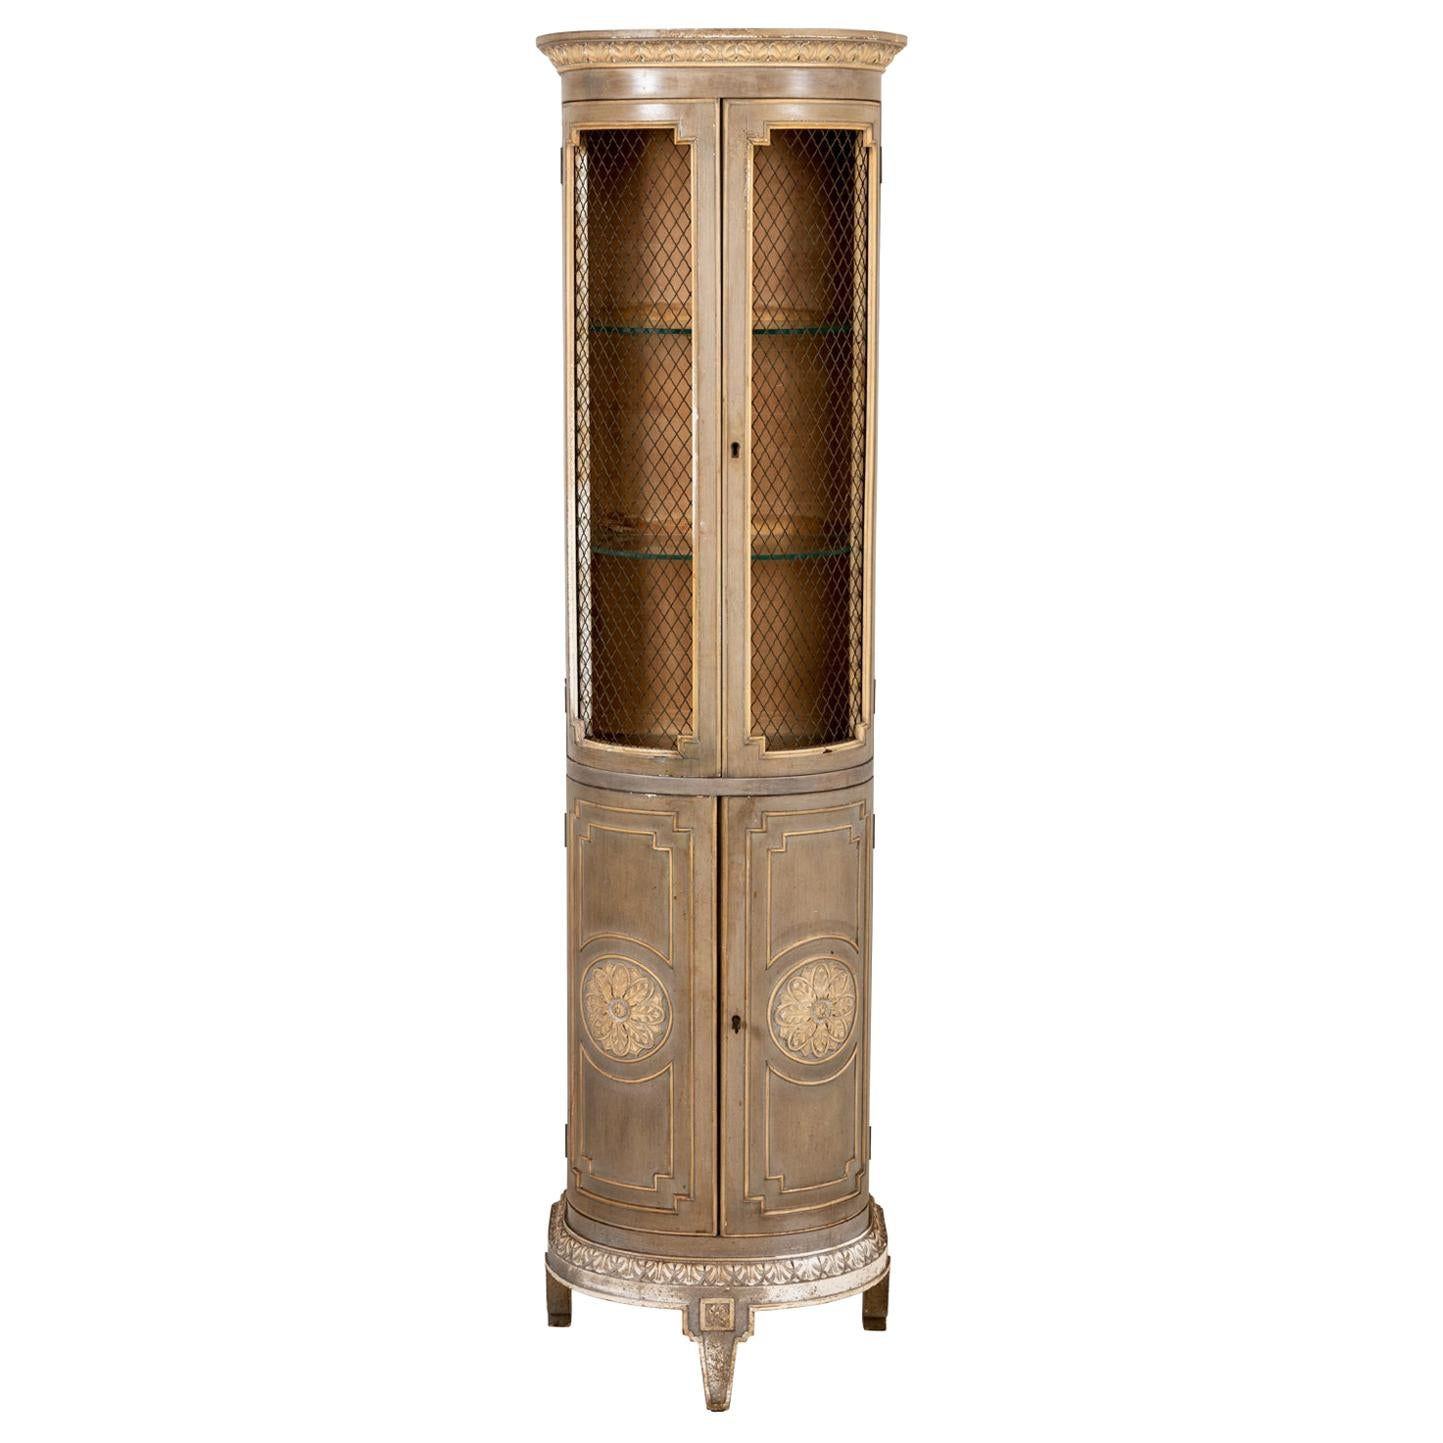 Continental Louis XVI Style Cabinet with Grill Doors